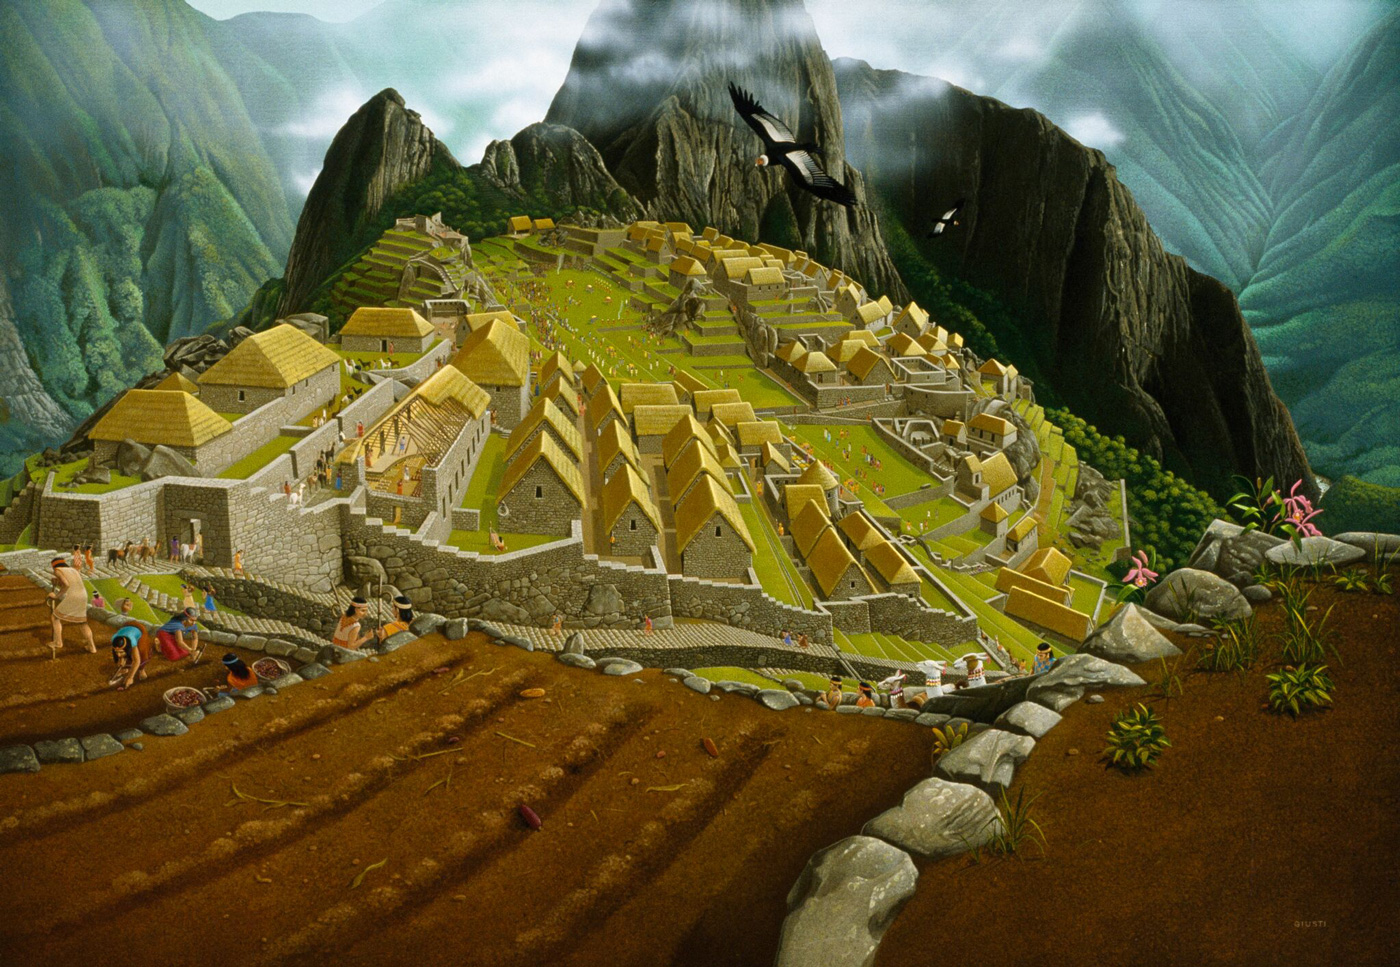 Inca leader Tupac Yupanqui built the stone walls that surround the city and buttress its temple in 1480.